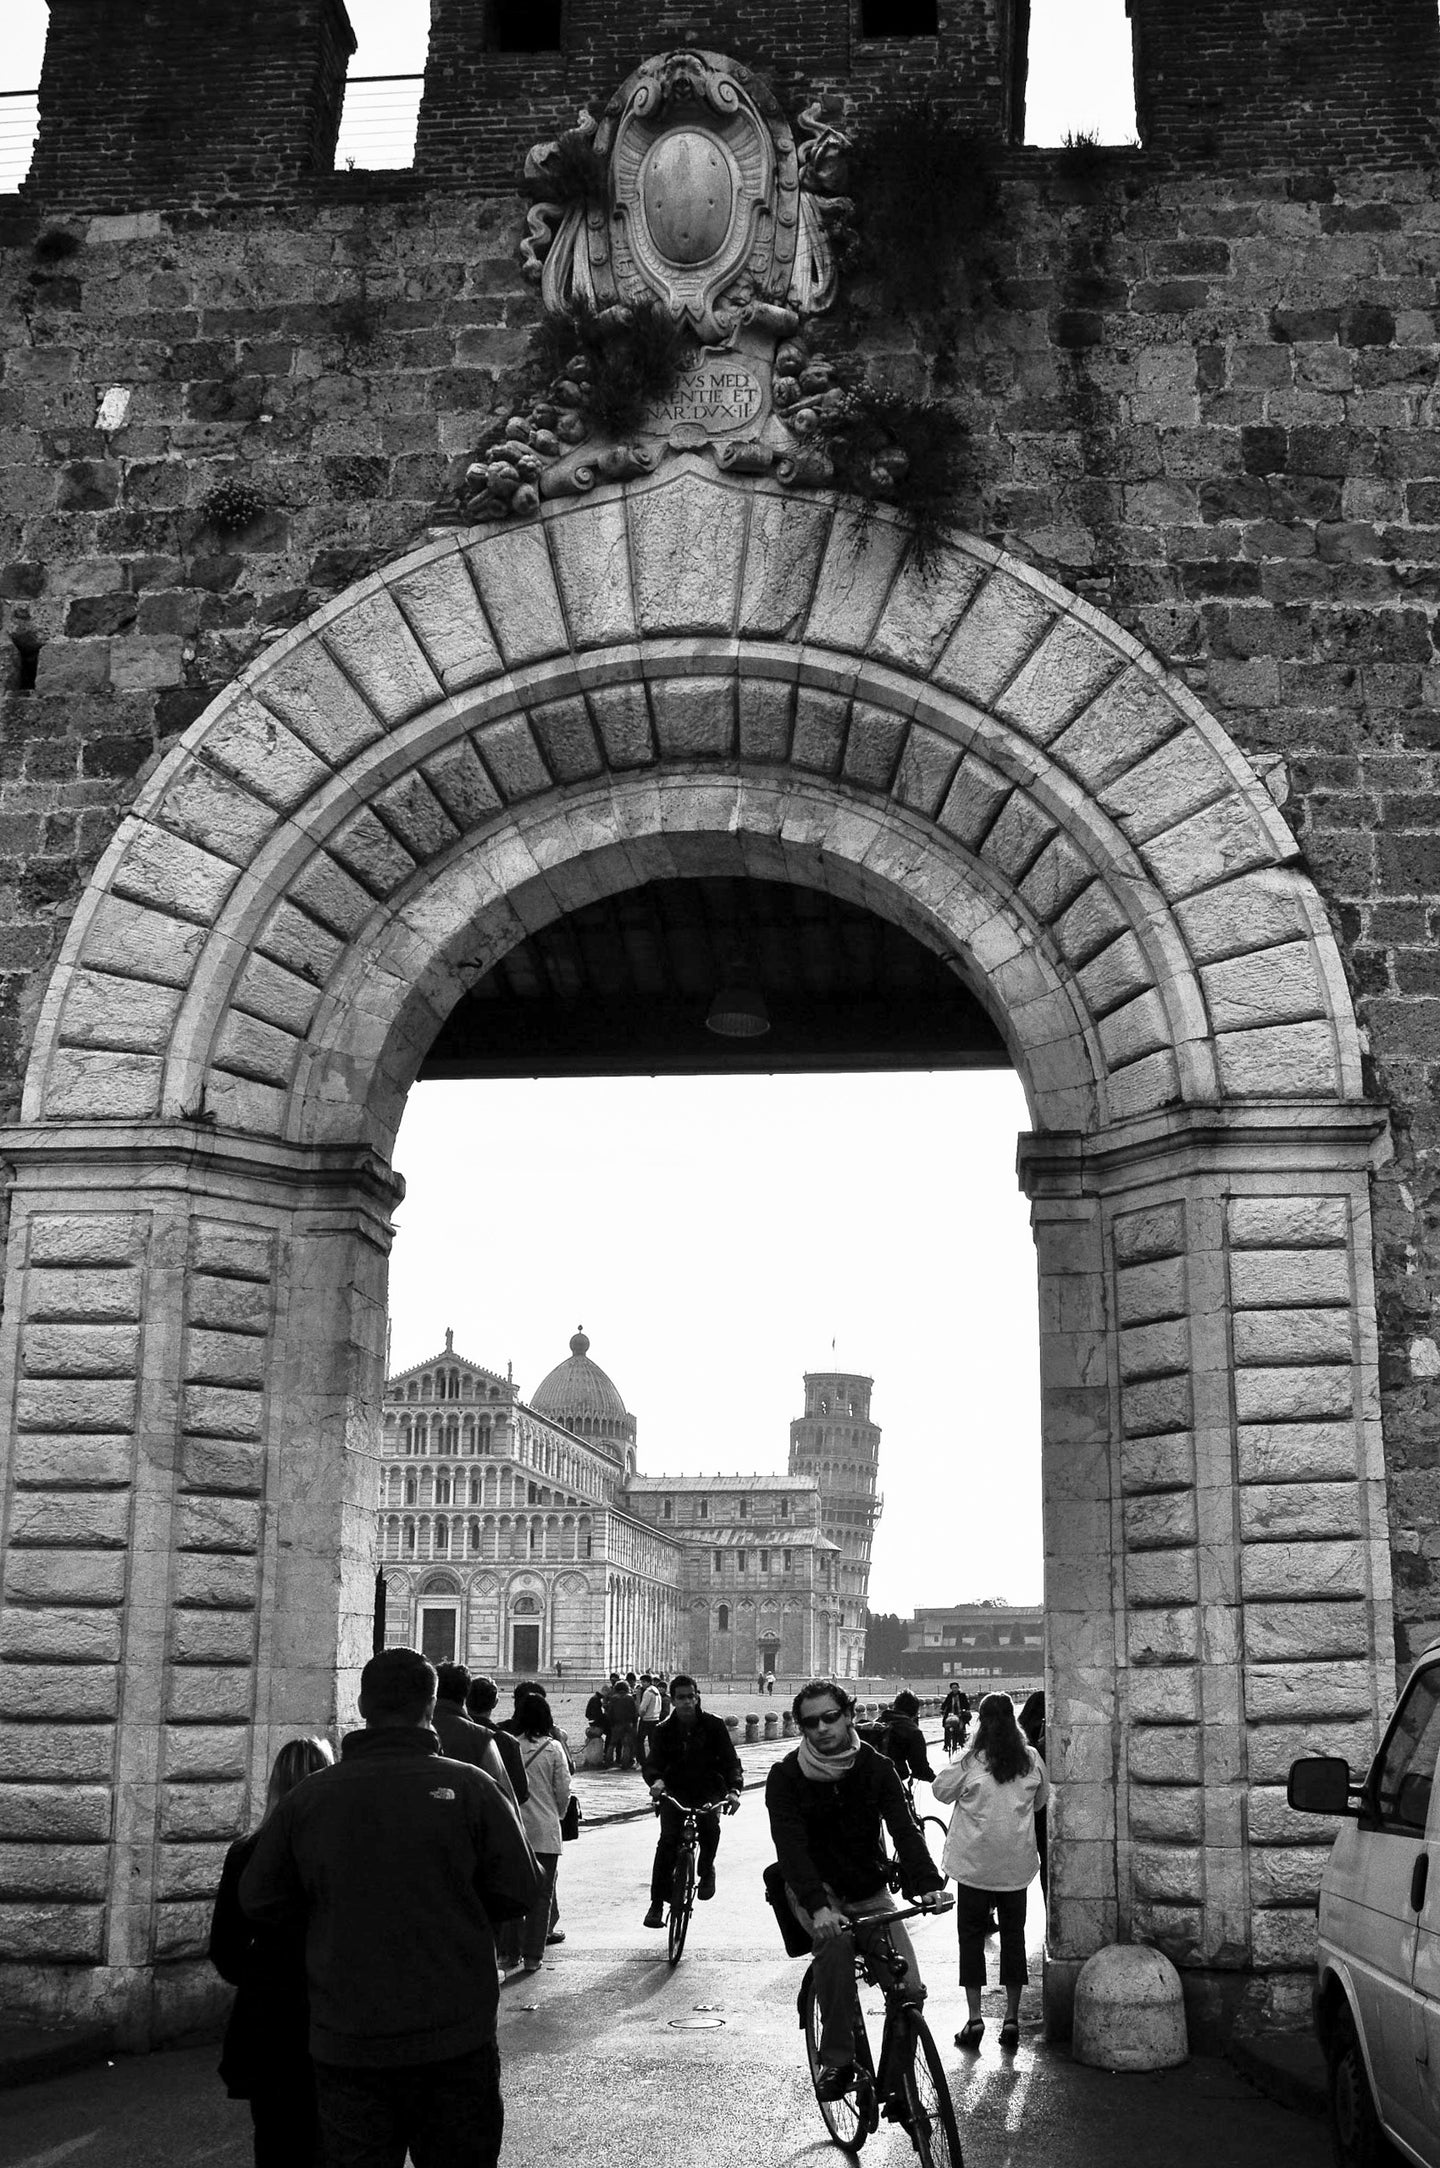 Doorway to Pisa - Tracy McCrackin Photography